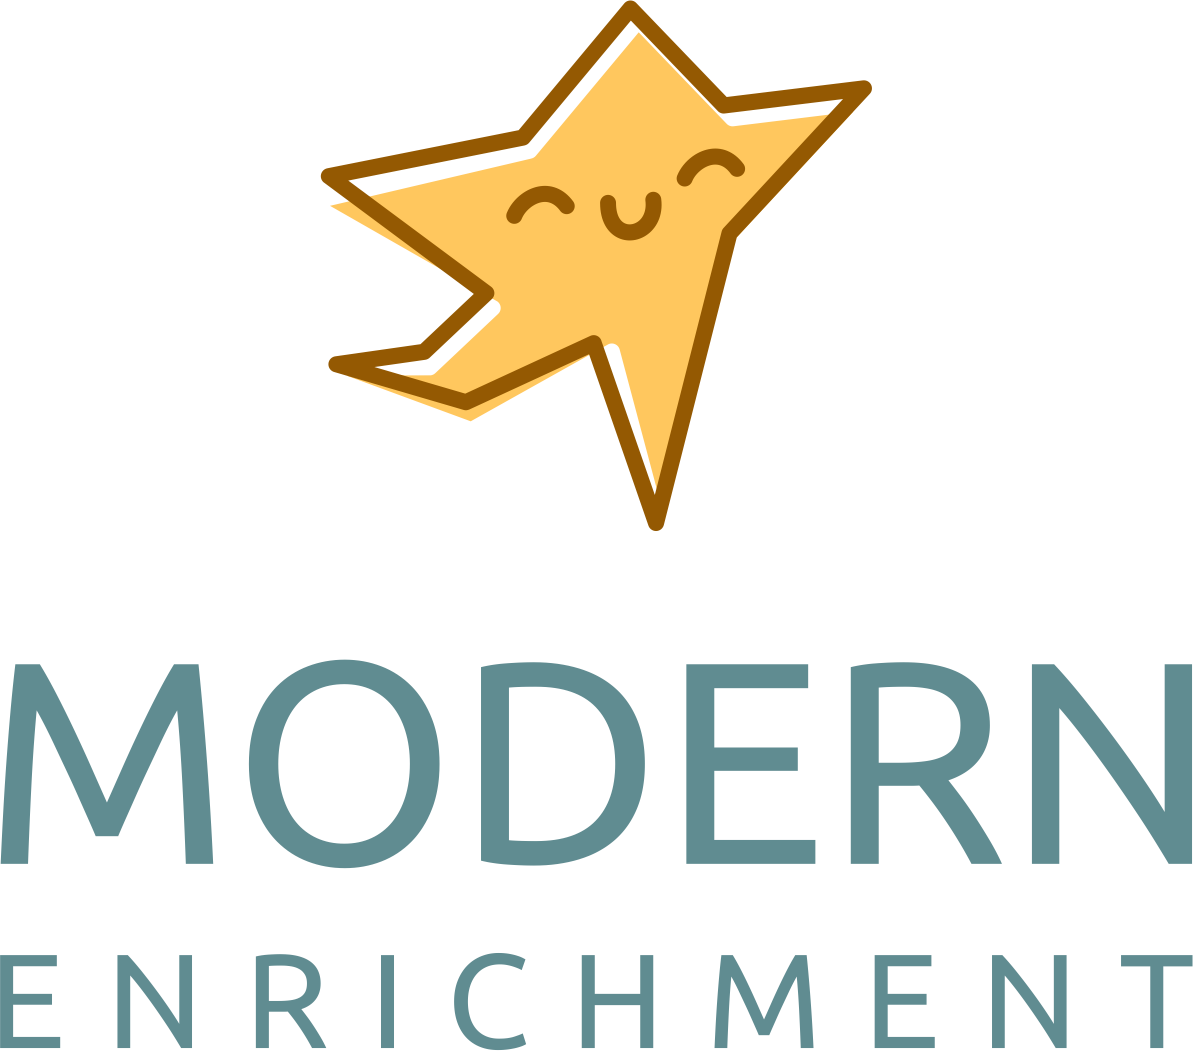 Child Enrichment Company Seeks Fun & Powerful Logo for Brand Recognition